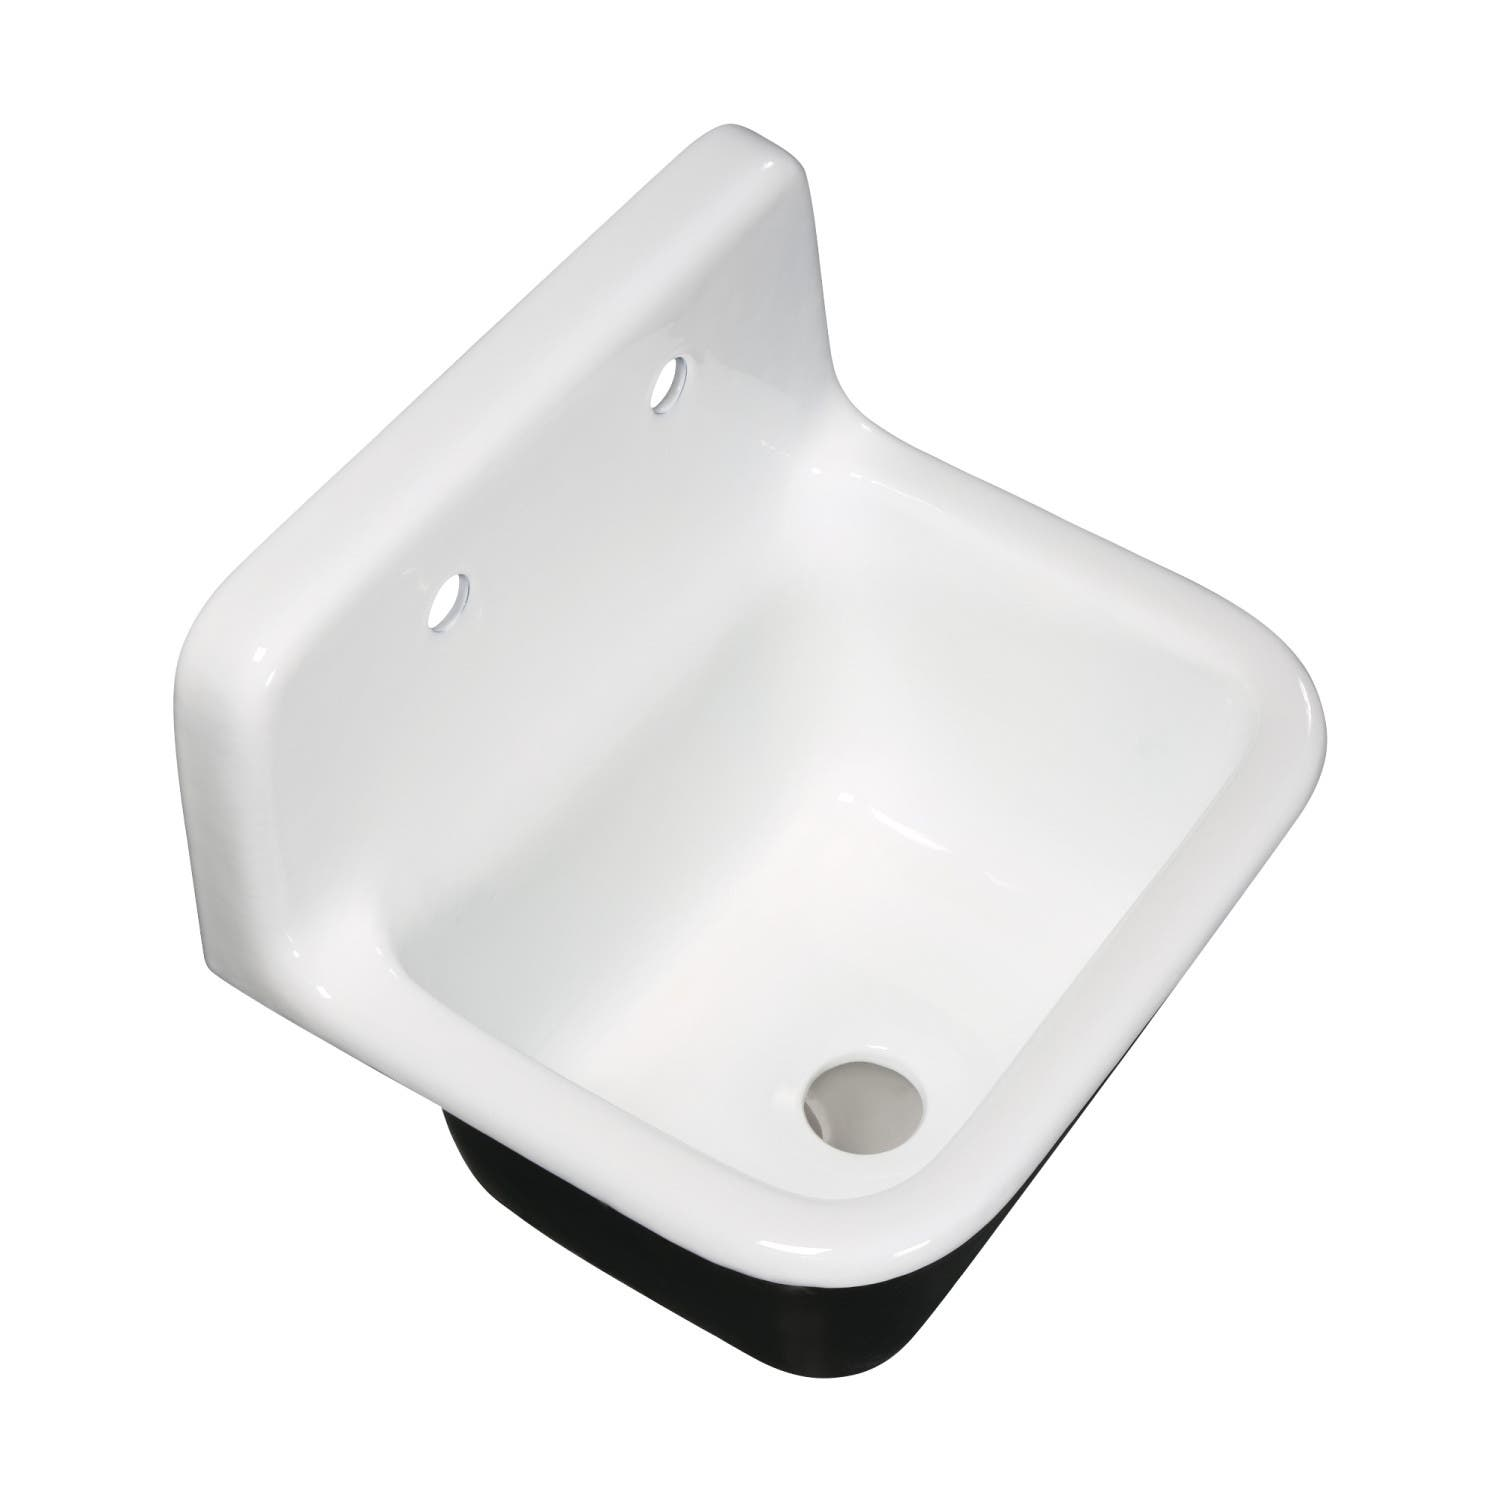 Fauceture GCKWS221822 Petra Galley 22 Inch Wall Mount Single Bowl Kitchen  Sink, White